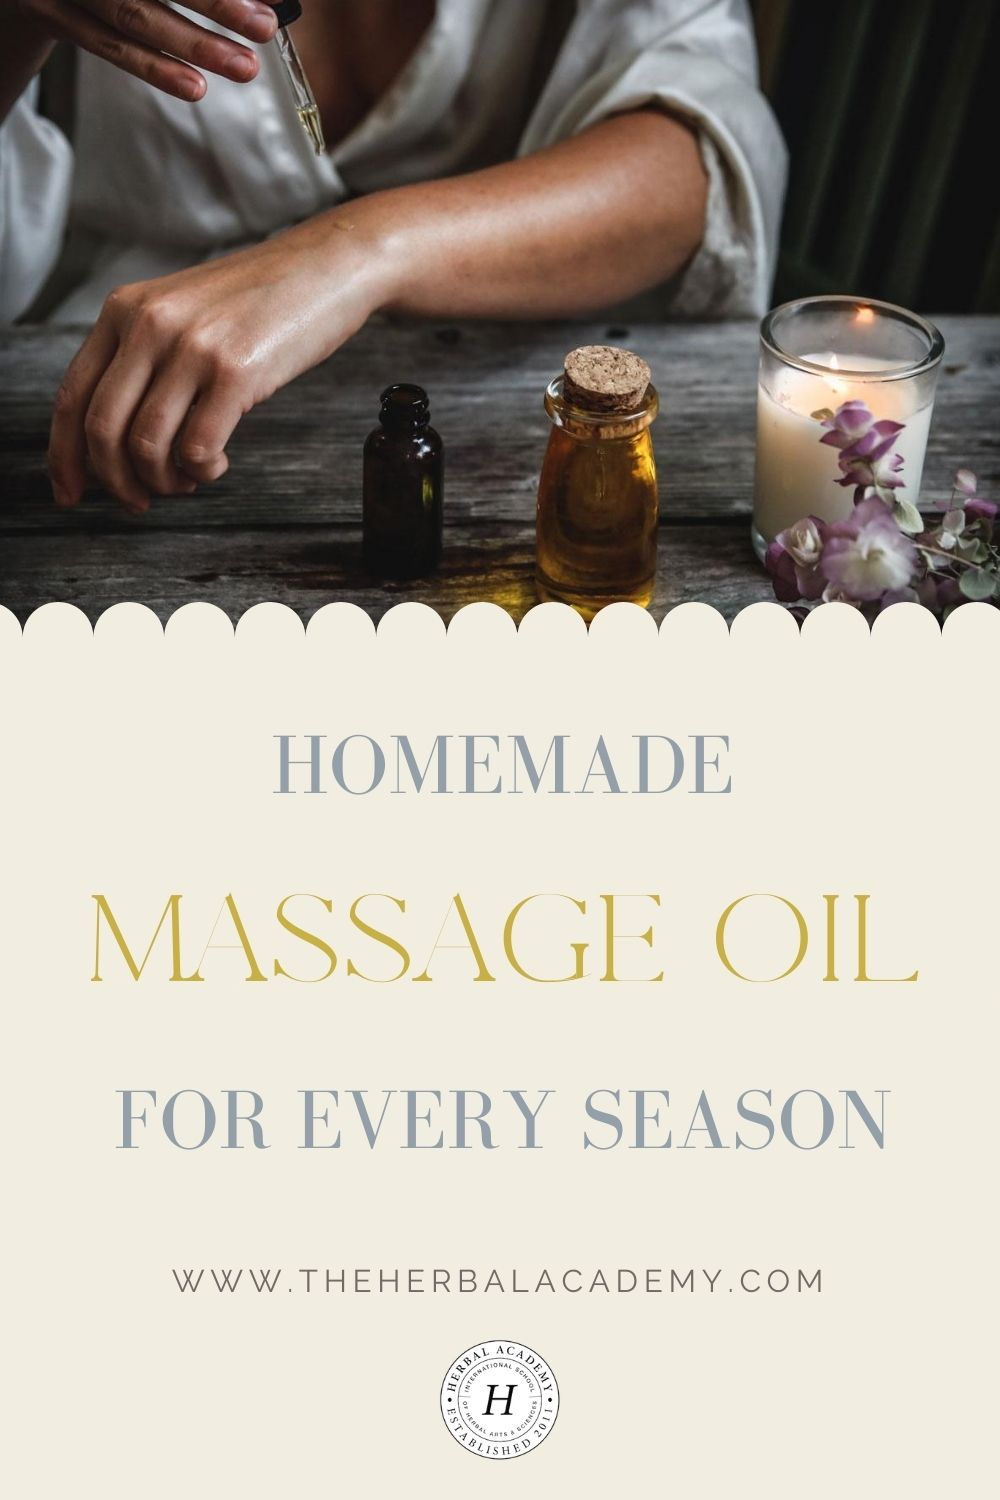 Homemade Massage Oil for Each Season | Herbal Academy | Herbal-infused homemade massage oils produce a grounding, supportive, and protective effect on the body and mind.